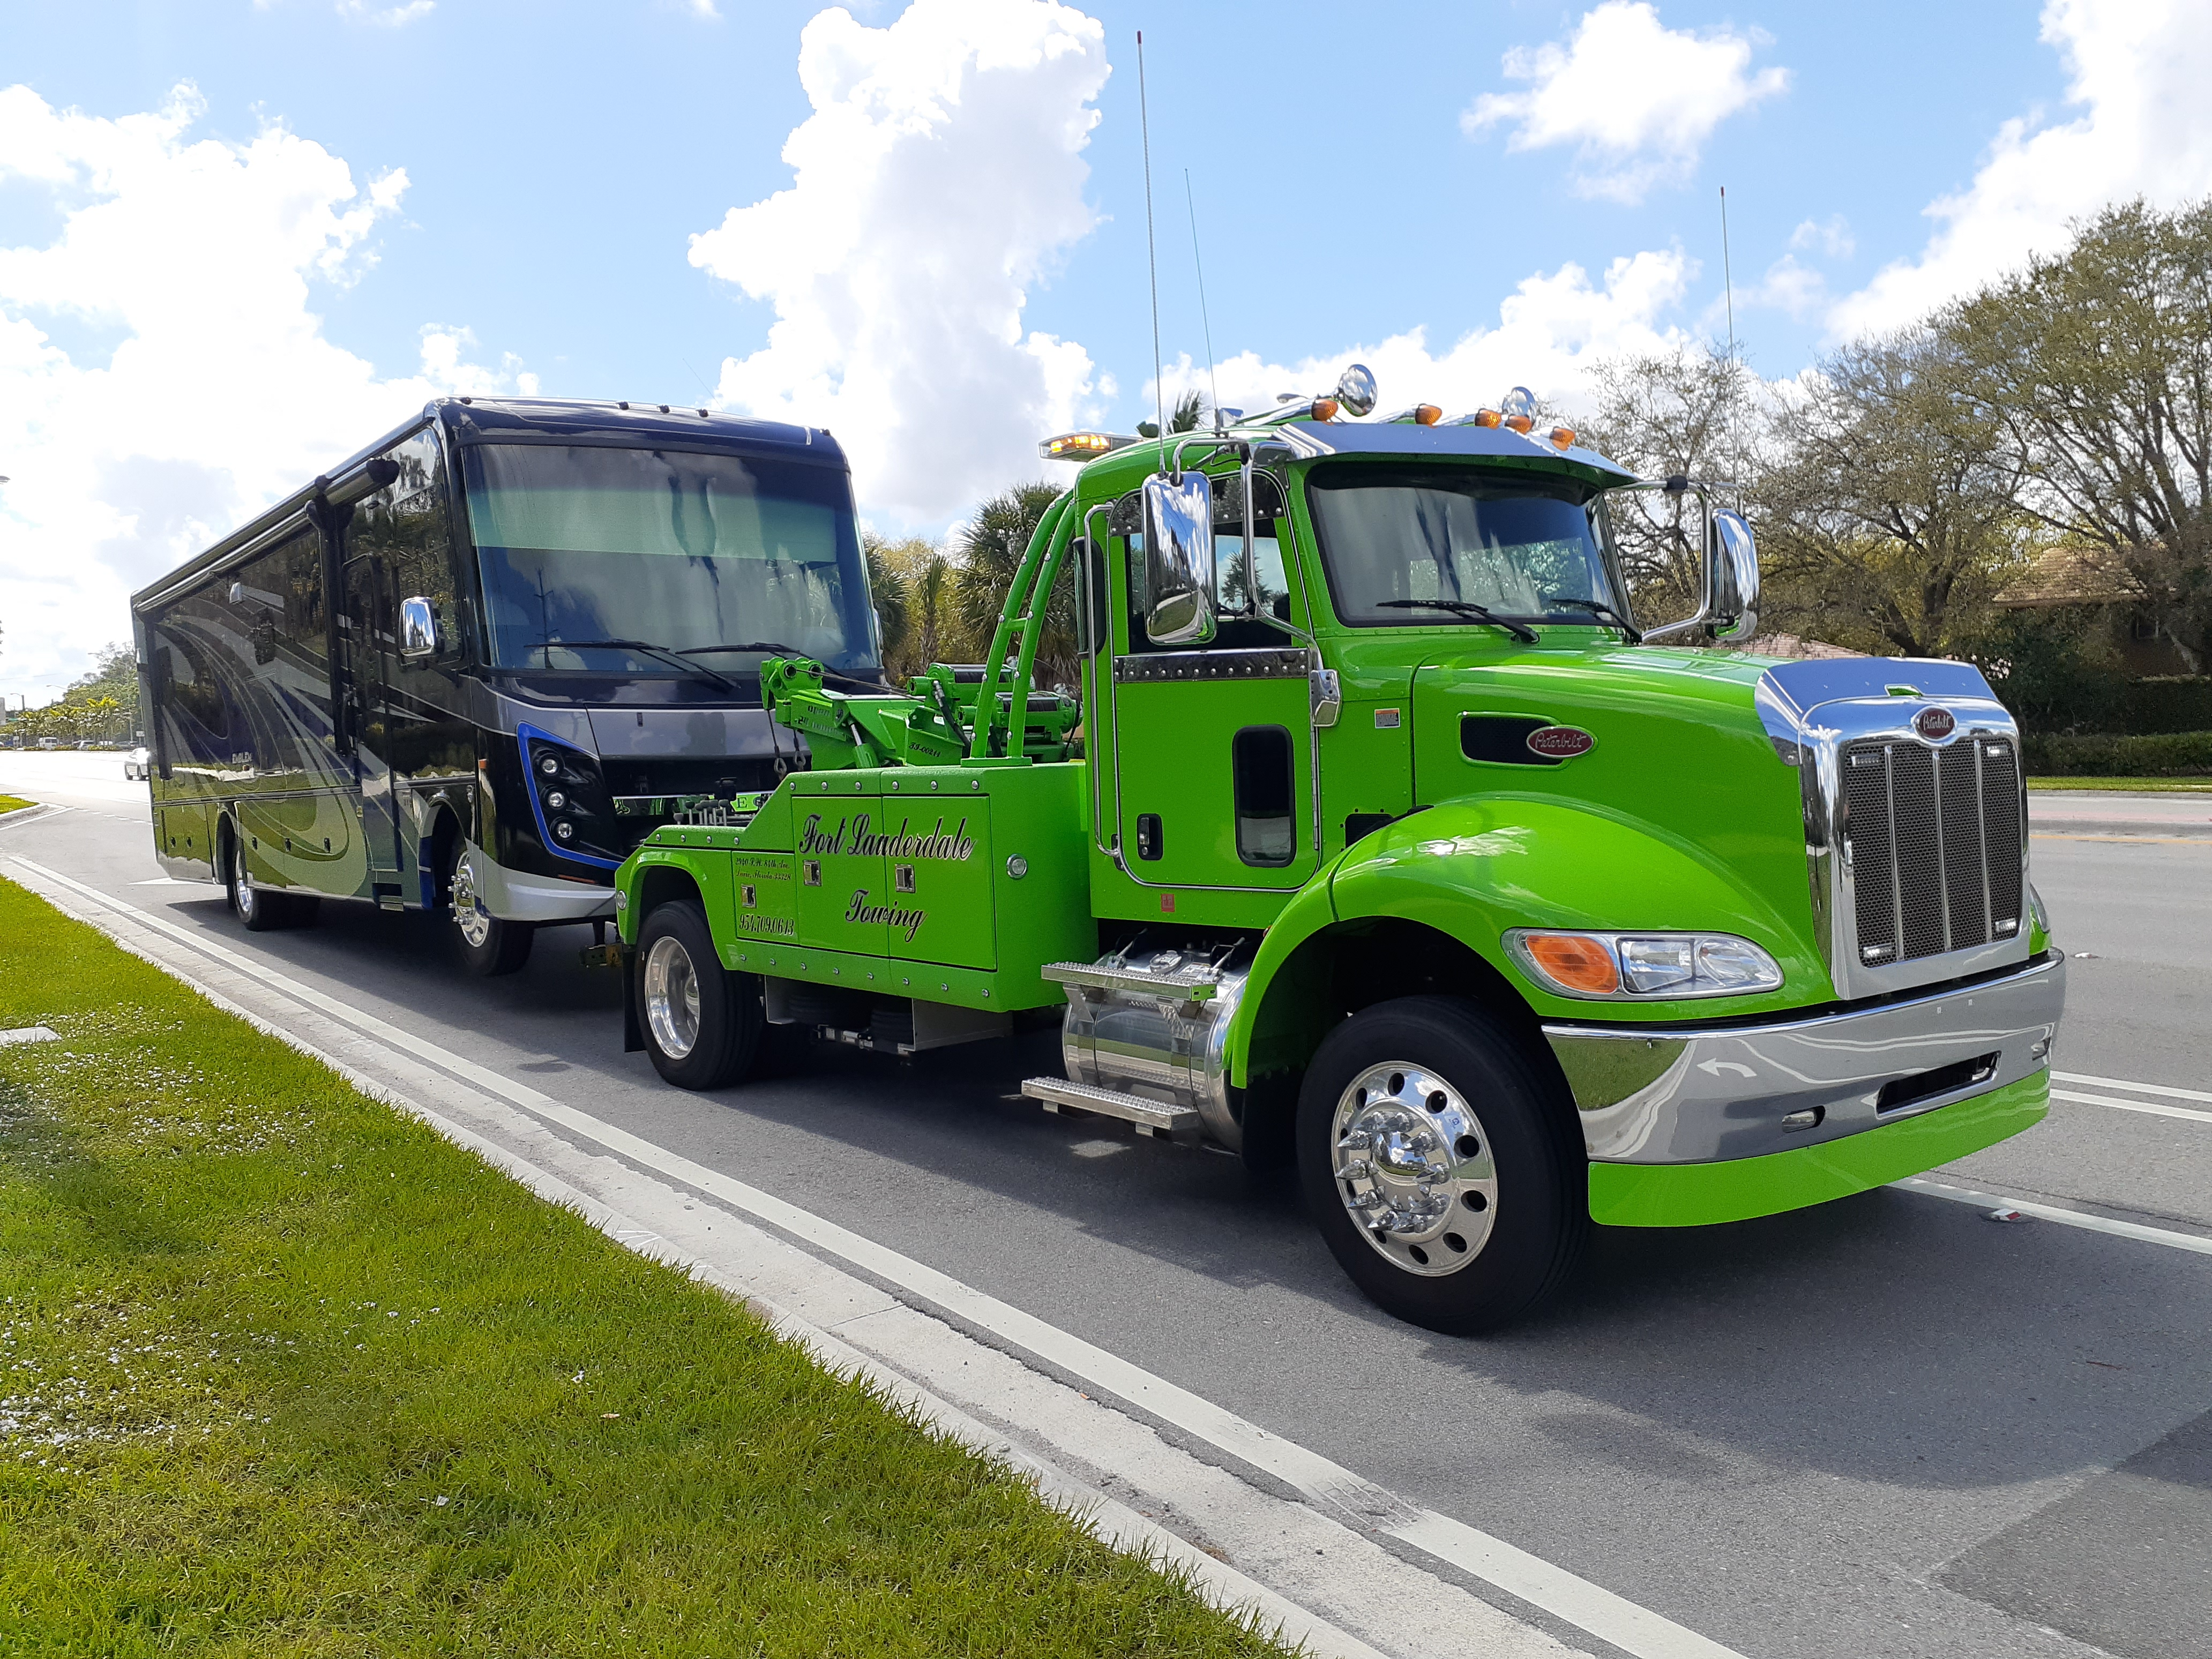 24 Hour Fort Lauderdale Towing Services Towing.com Profile Banner